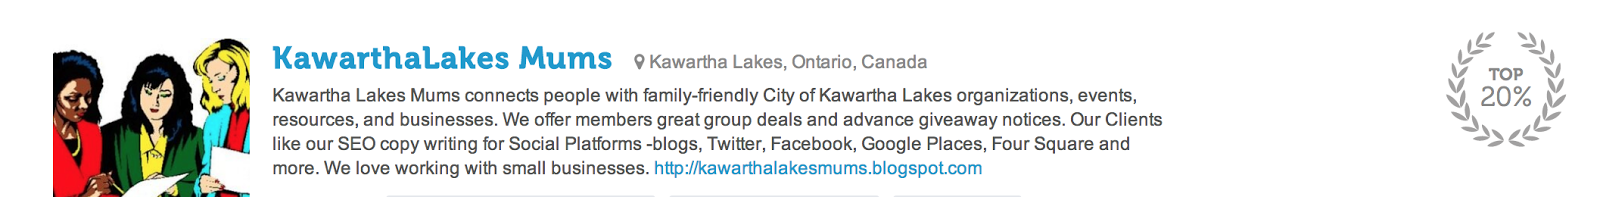 Twtrland Awards Kawartha Lakes Mums Top 20% Social Media Award!